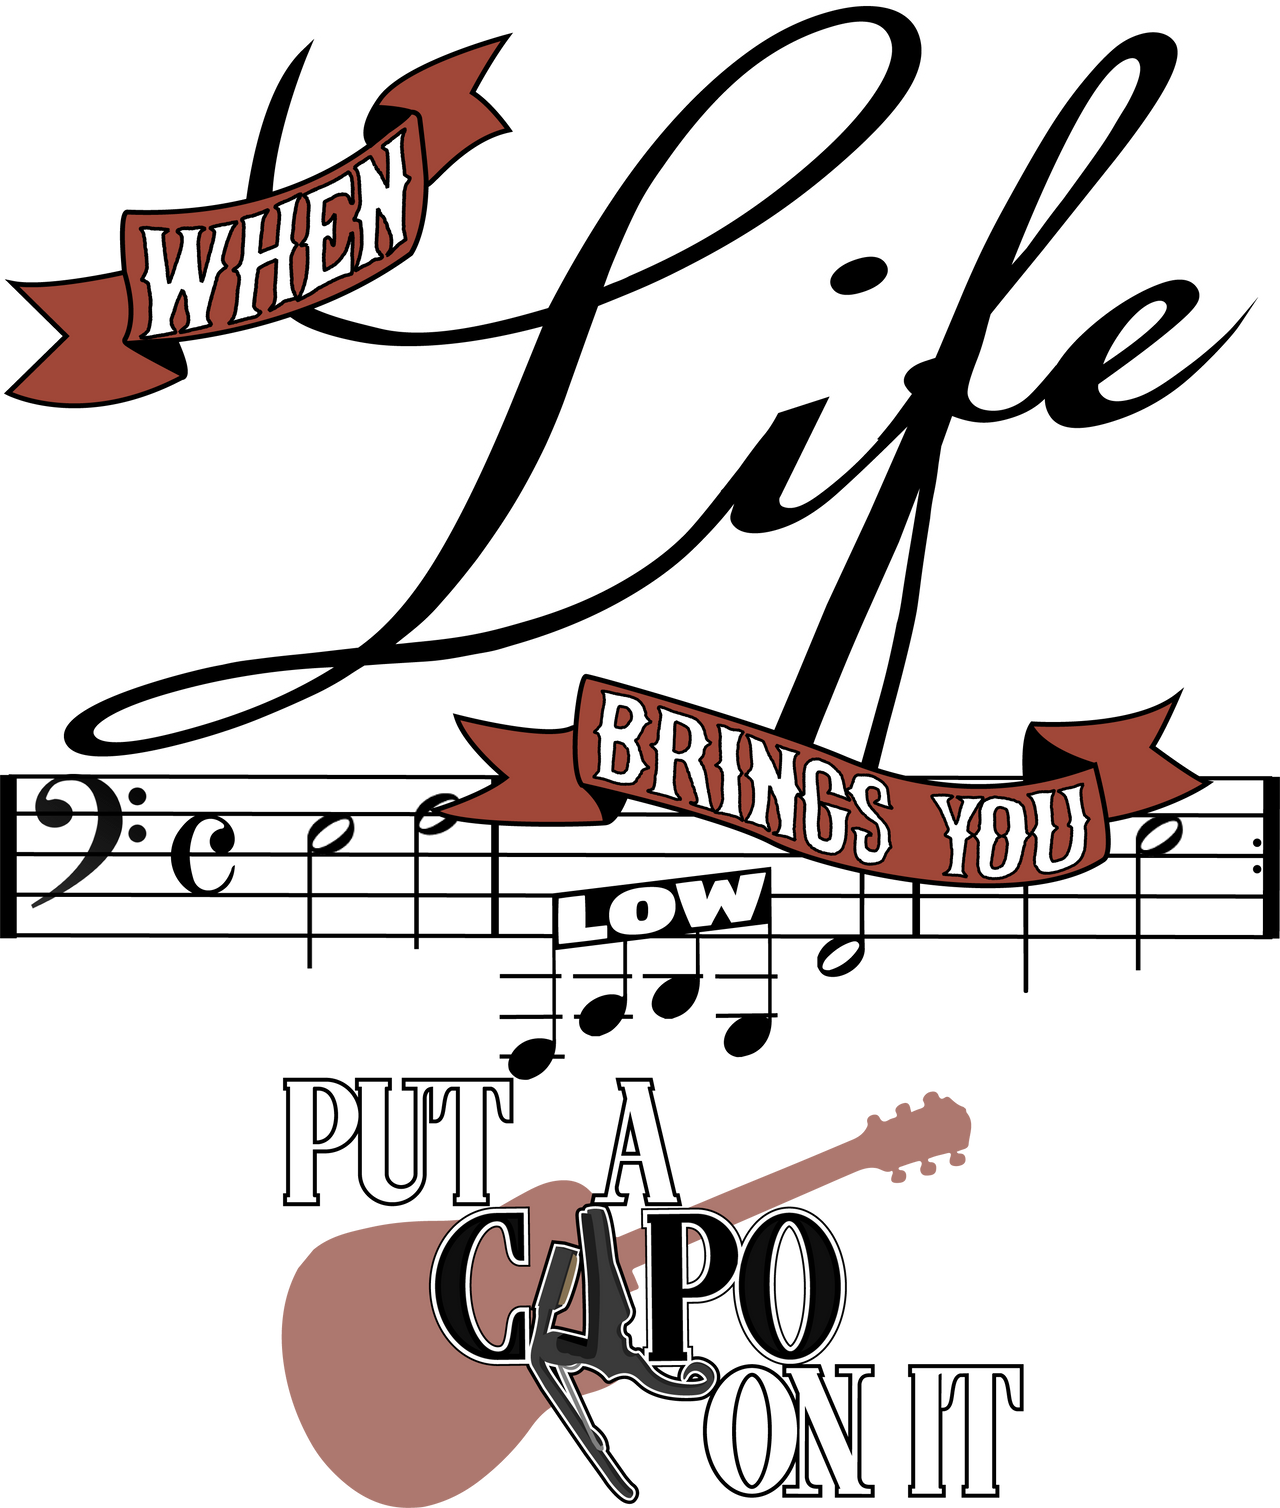 Put a Capo on it. [Full Design} by GoldenYak9753